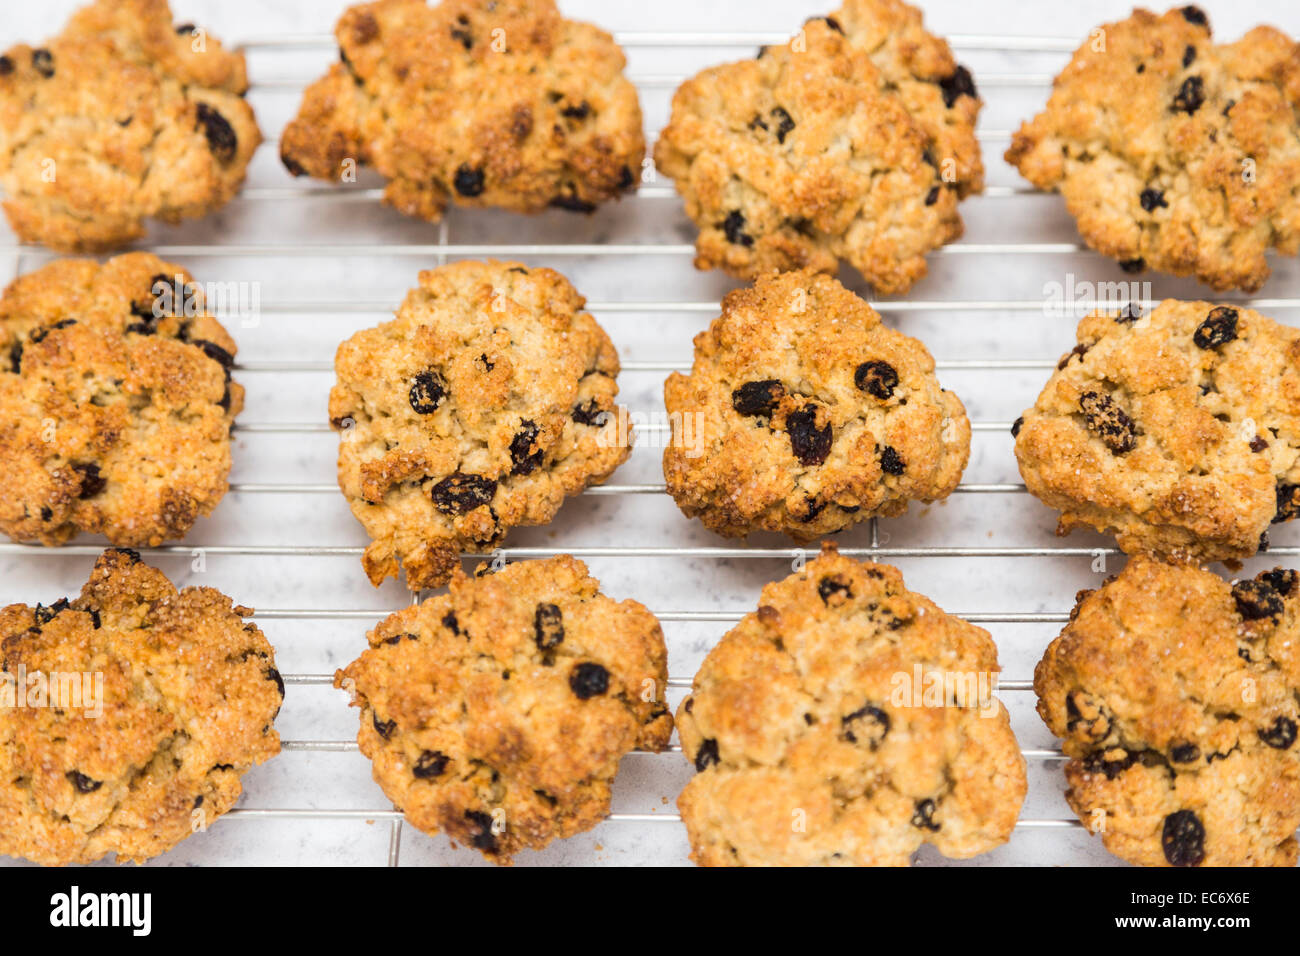 Rock cakes, a traditional British teatime treat, home-baked small fruit cakes made with currents or raisins, on - Stock Image